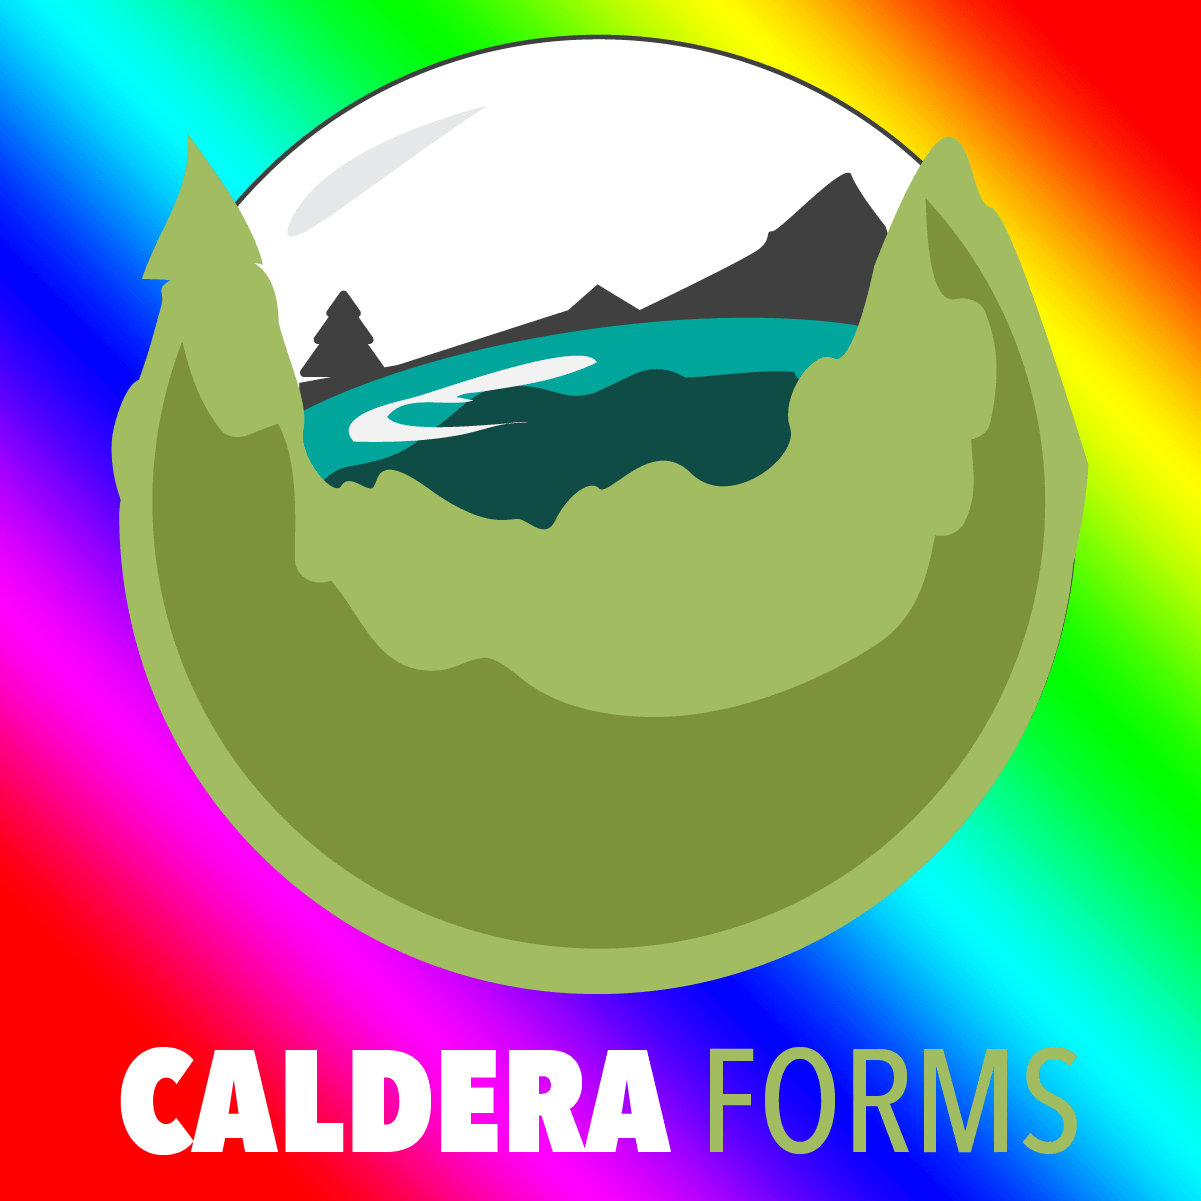 The Caldera globe logo with the words Caldera Forms below it and a rainbow background